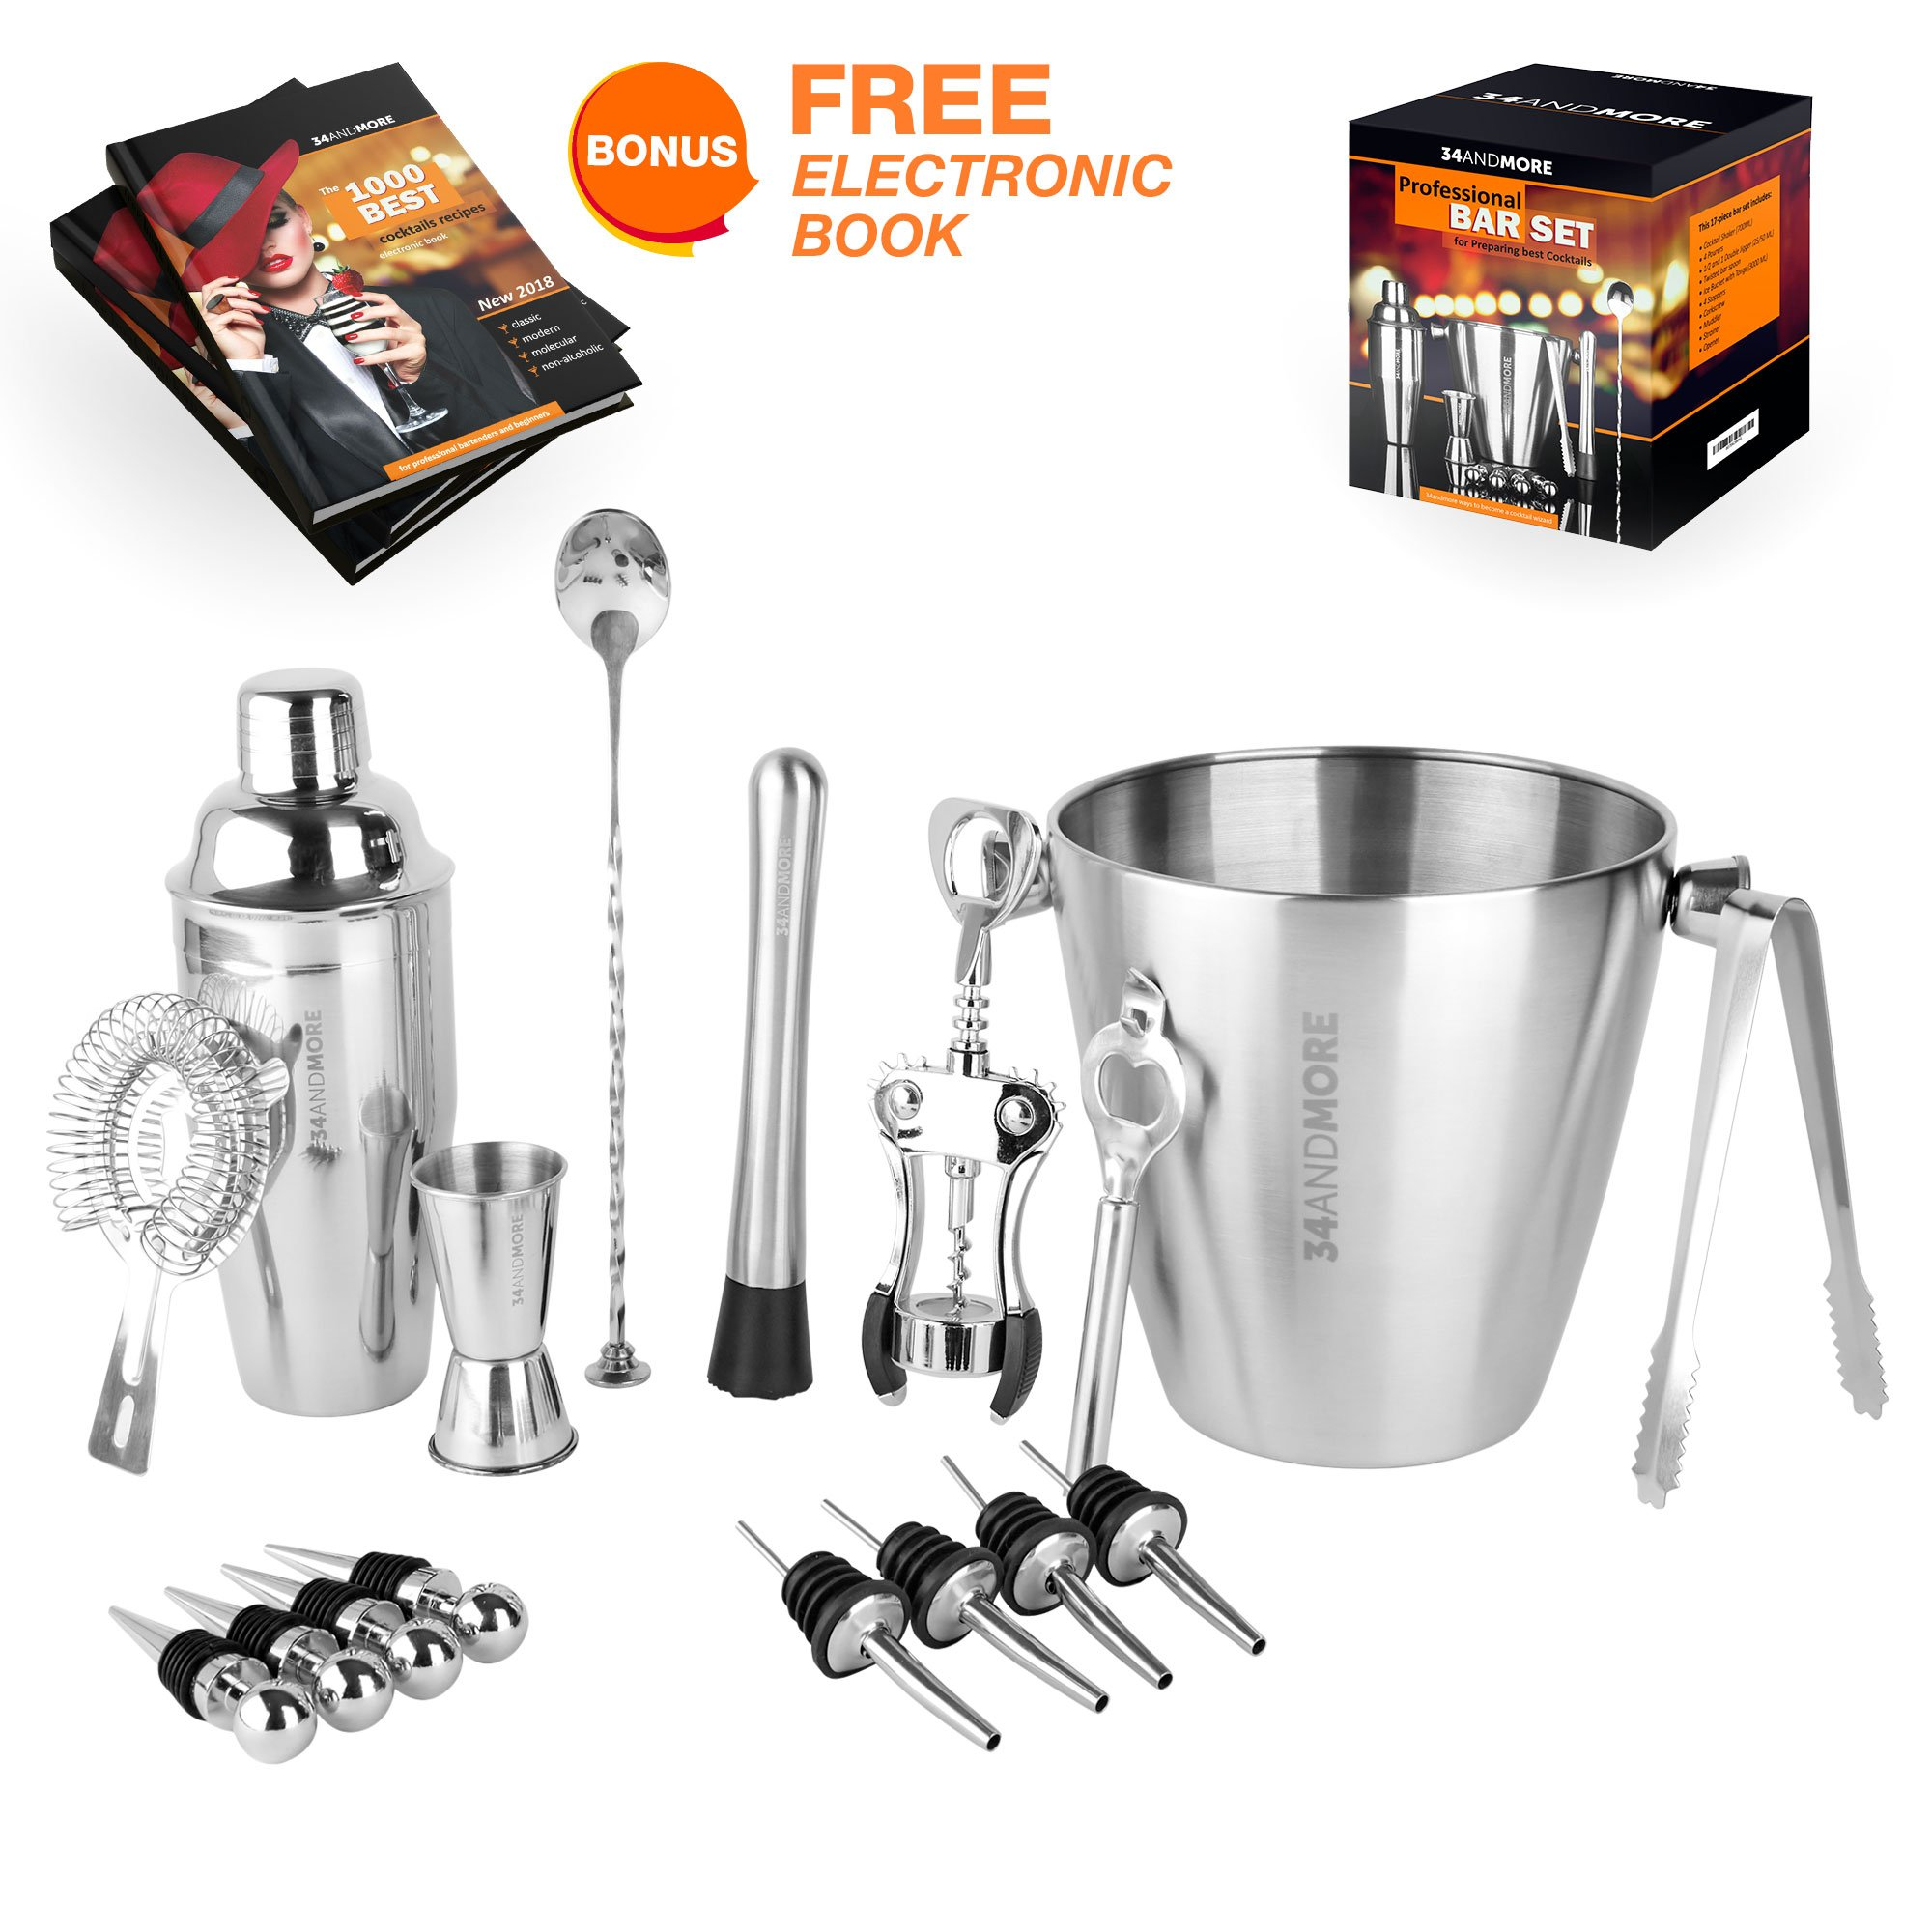 Bar Set 17-Pcs Jumbo Bartender Kit – Premium Cocktail Set Mixology Kit for Bar and Home - Best All-In-One Cocktail Shaker Set - Bartender Mixology Barware Set for Men and Women - Bar Tools Martini Kit by 34andMORE (Image #1)